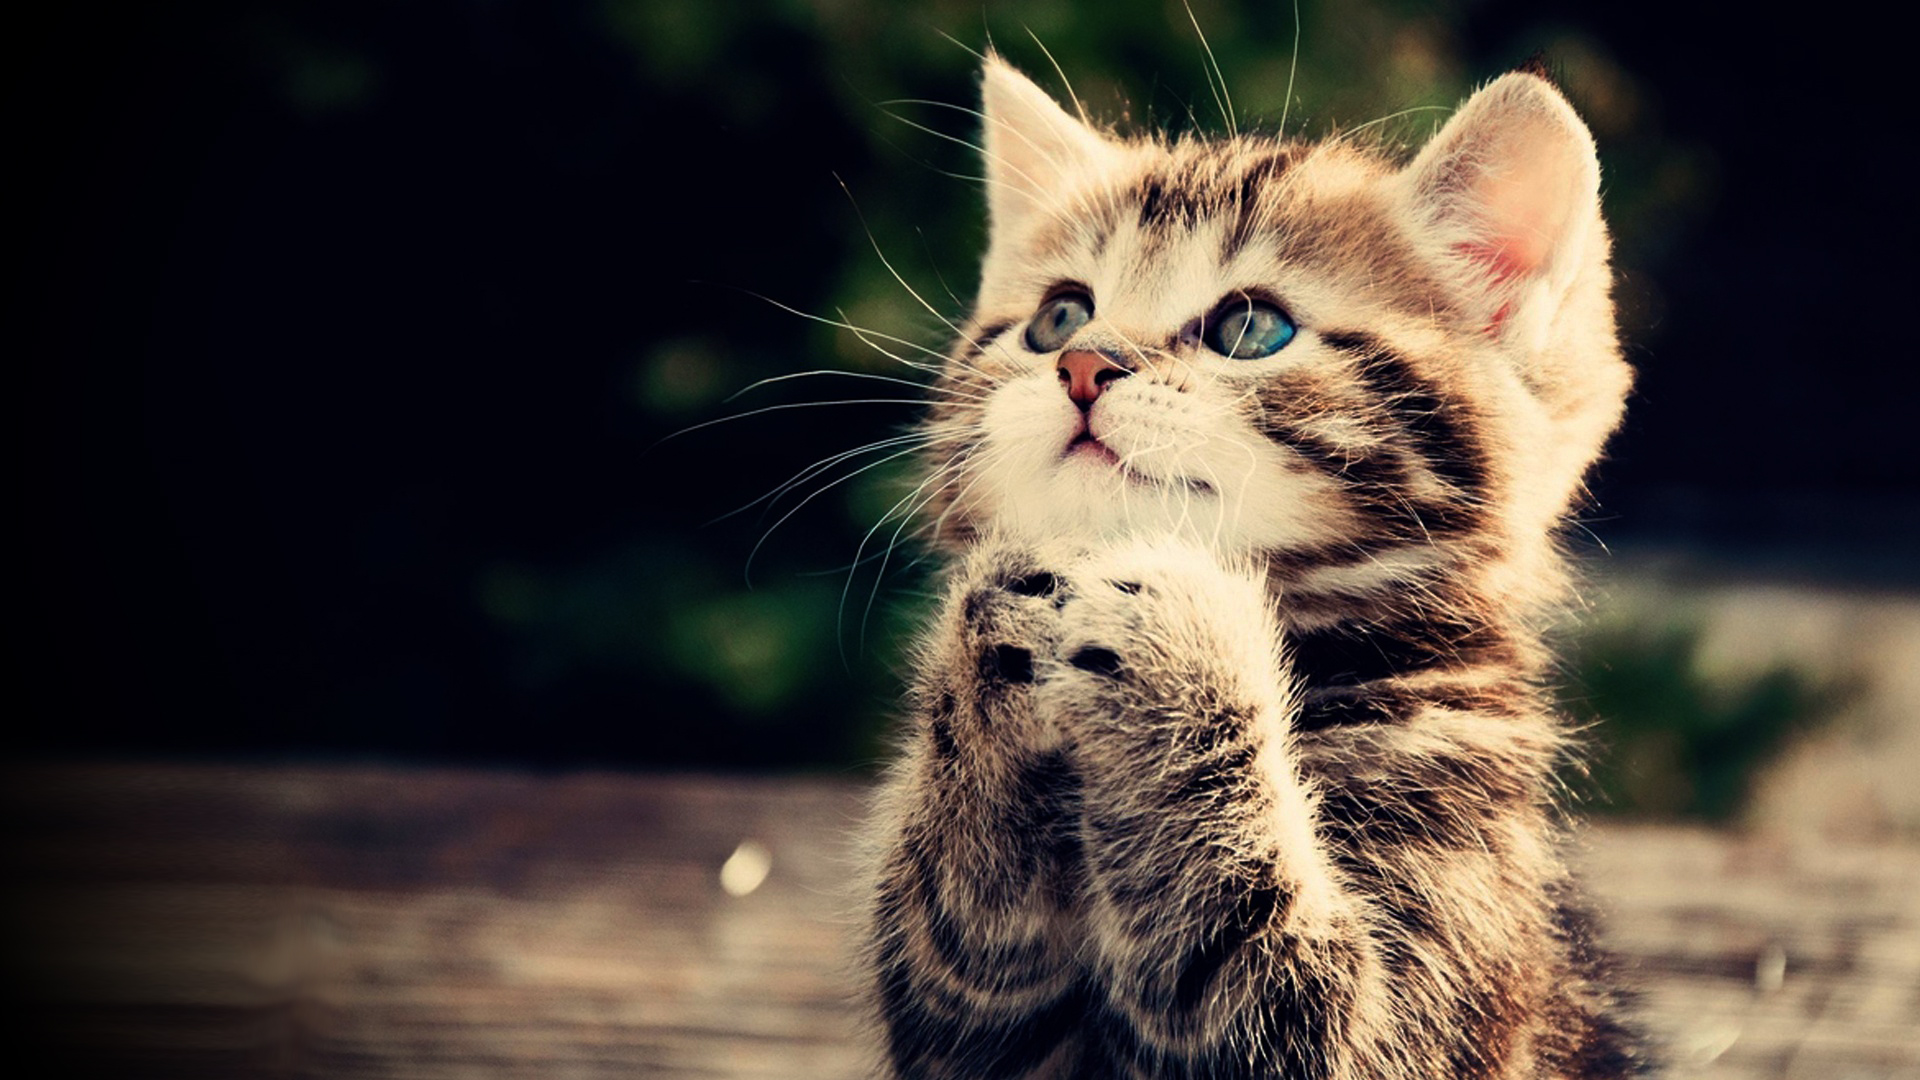 funny cat full hd wallpaper praying kitten cute animal picture 1920x1080